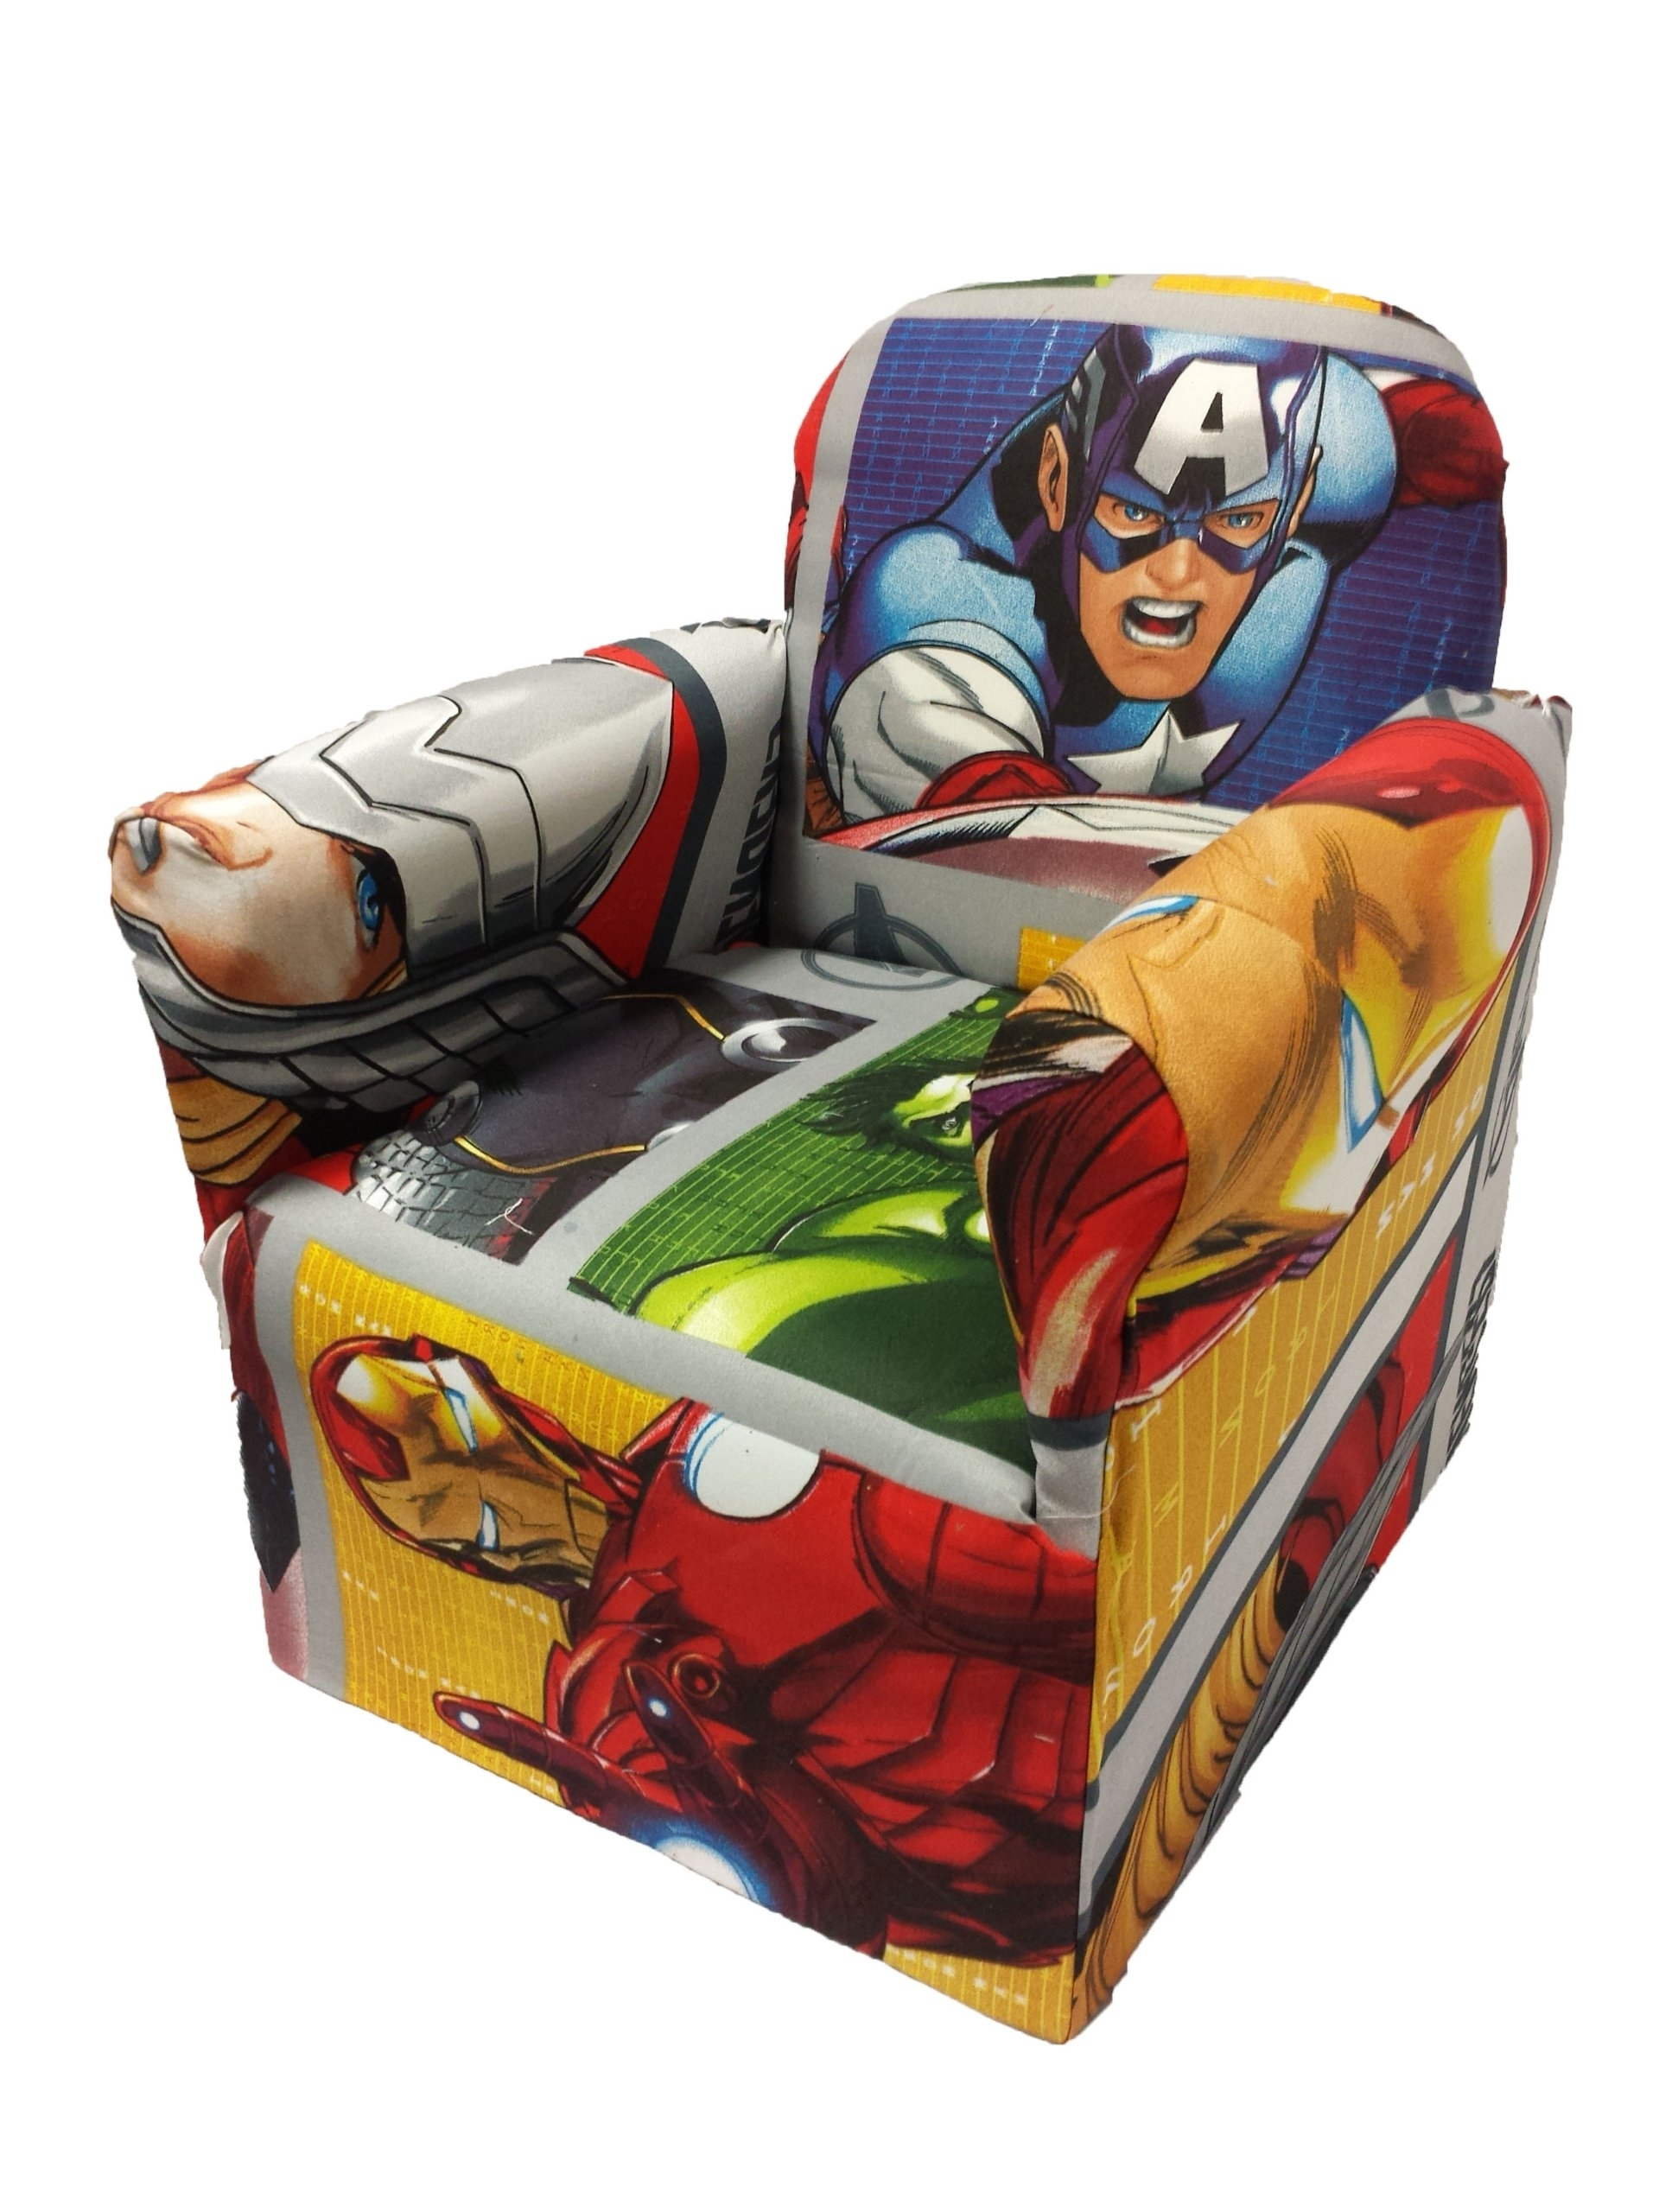 Preferred Childrens Disney Tv Characters Chair Sofa Kids Seats (Marvel Throughout Disney Sofa Chairs (View 15 of 20)